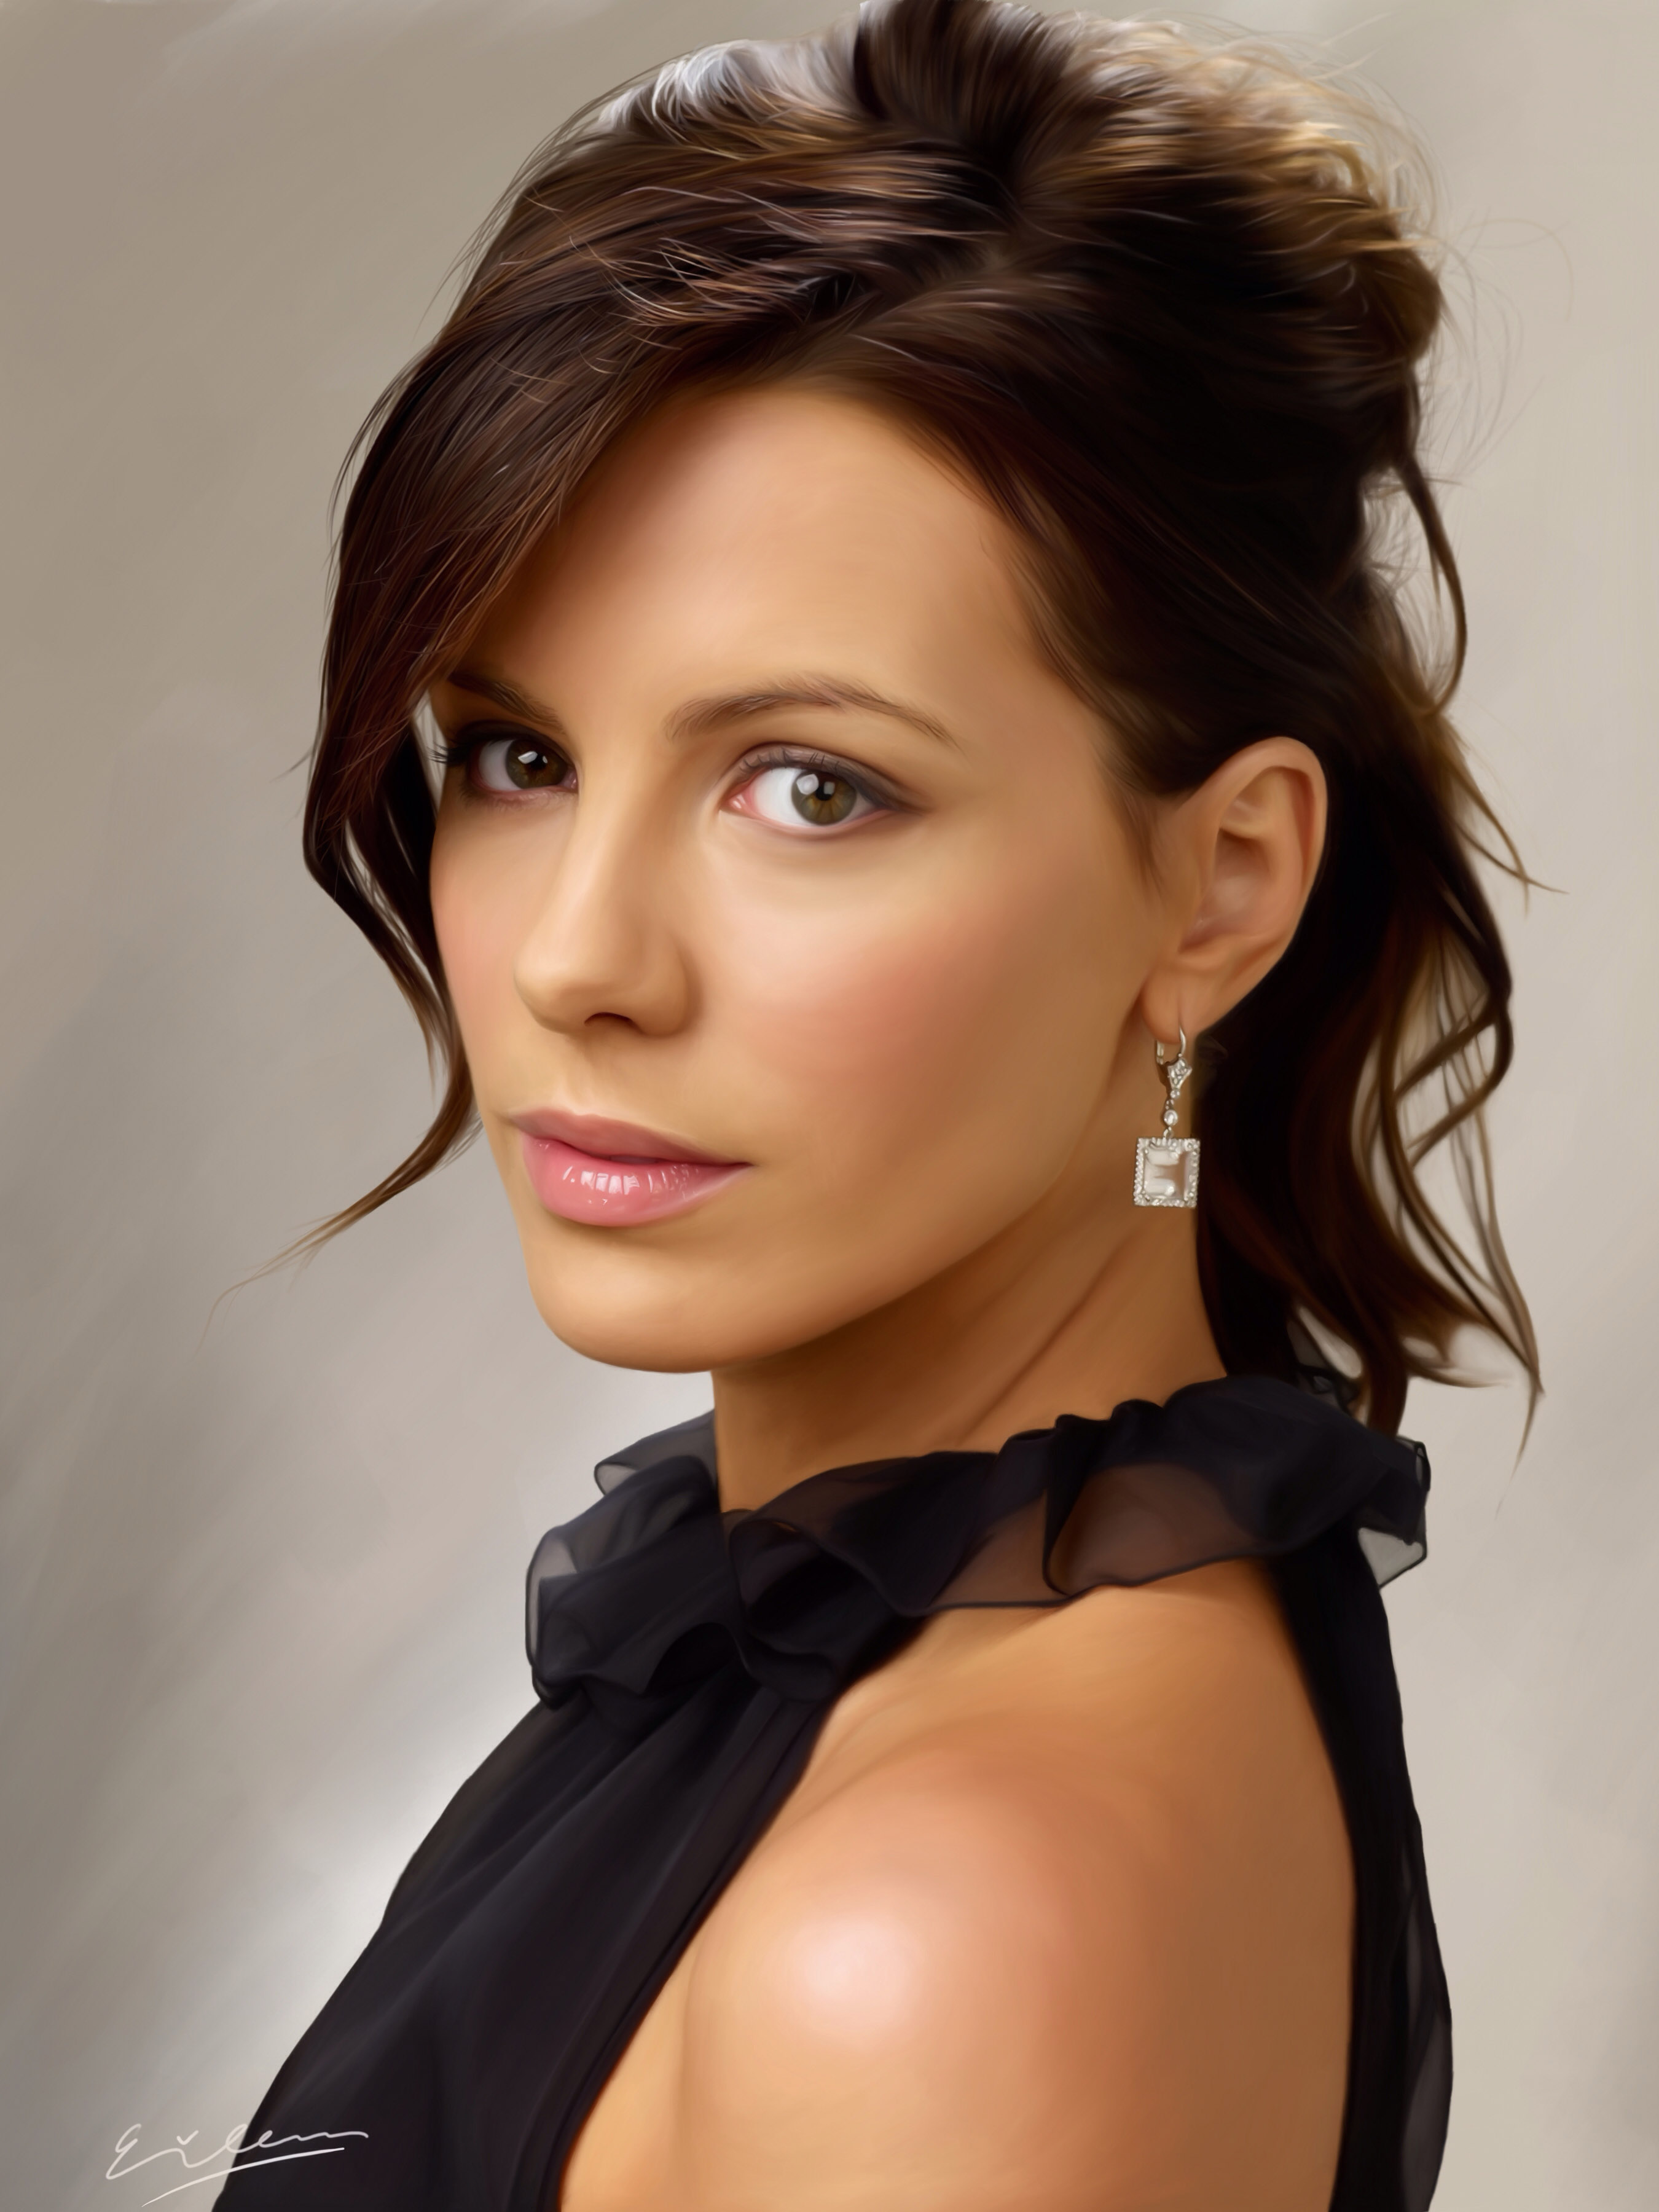 Airbrushed and Idealized Young Kate Beckinsale as LADY LIBERTY - Magic Painting by Eileen Irma